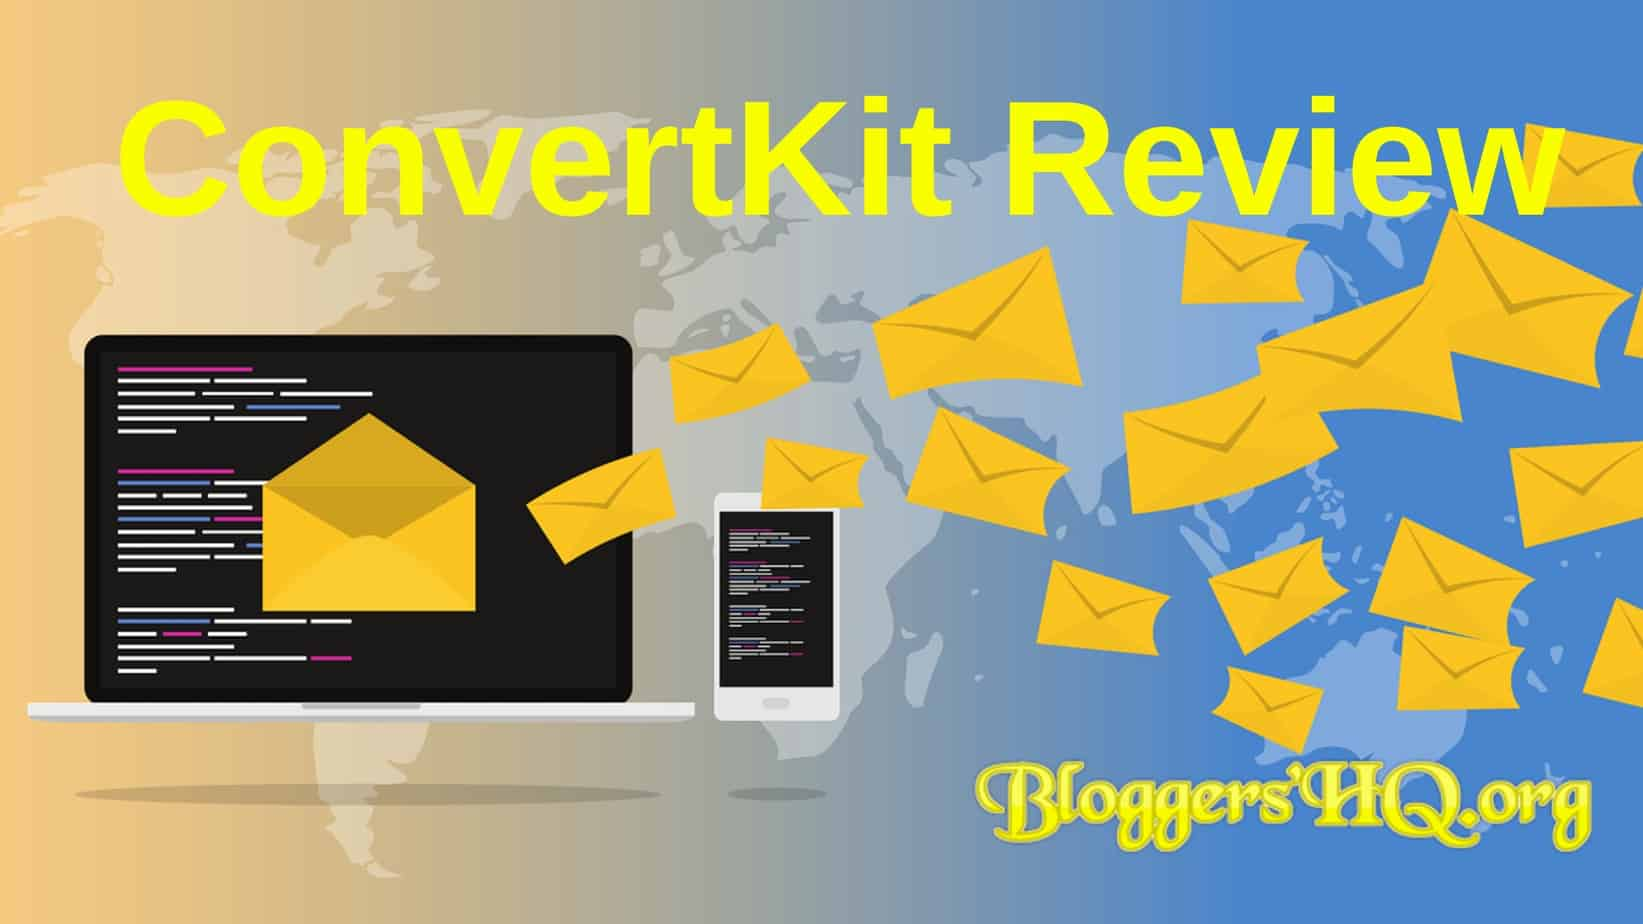 Semi Annual Sale Email Marketing Convertkit 2020